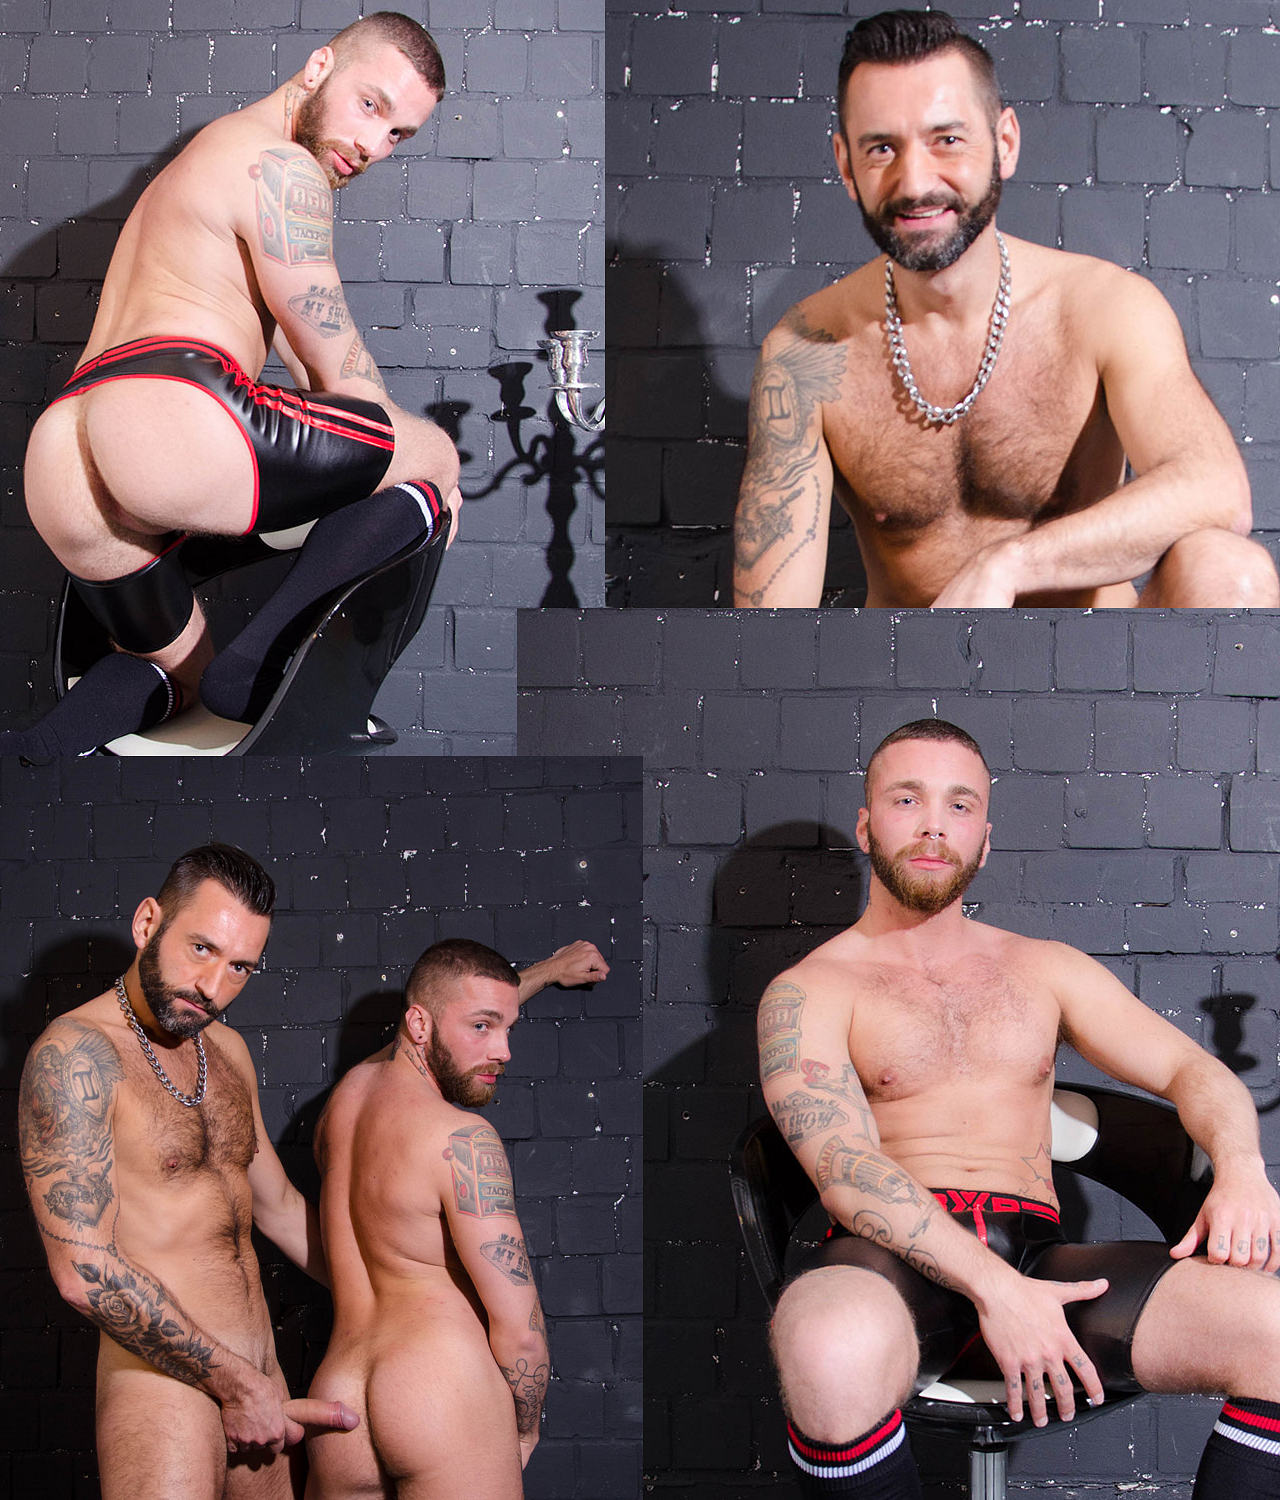 flo carrera video gay